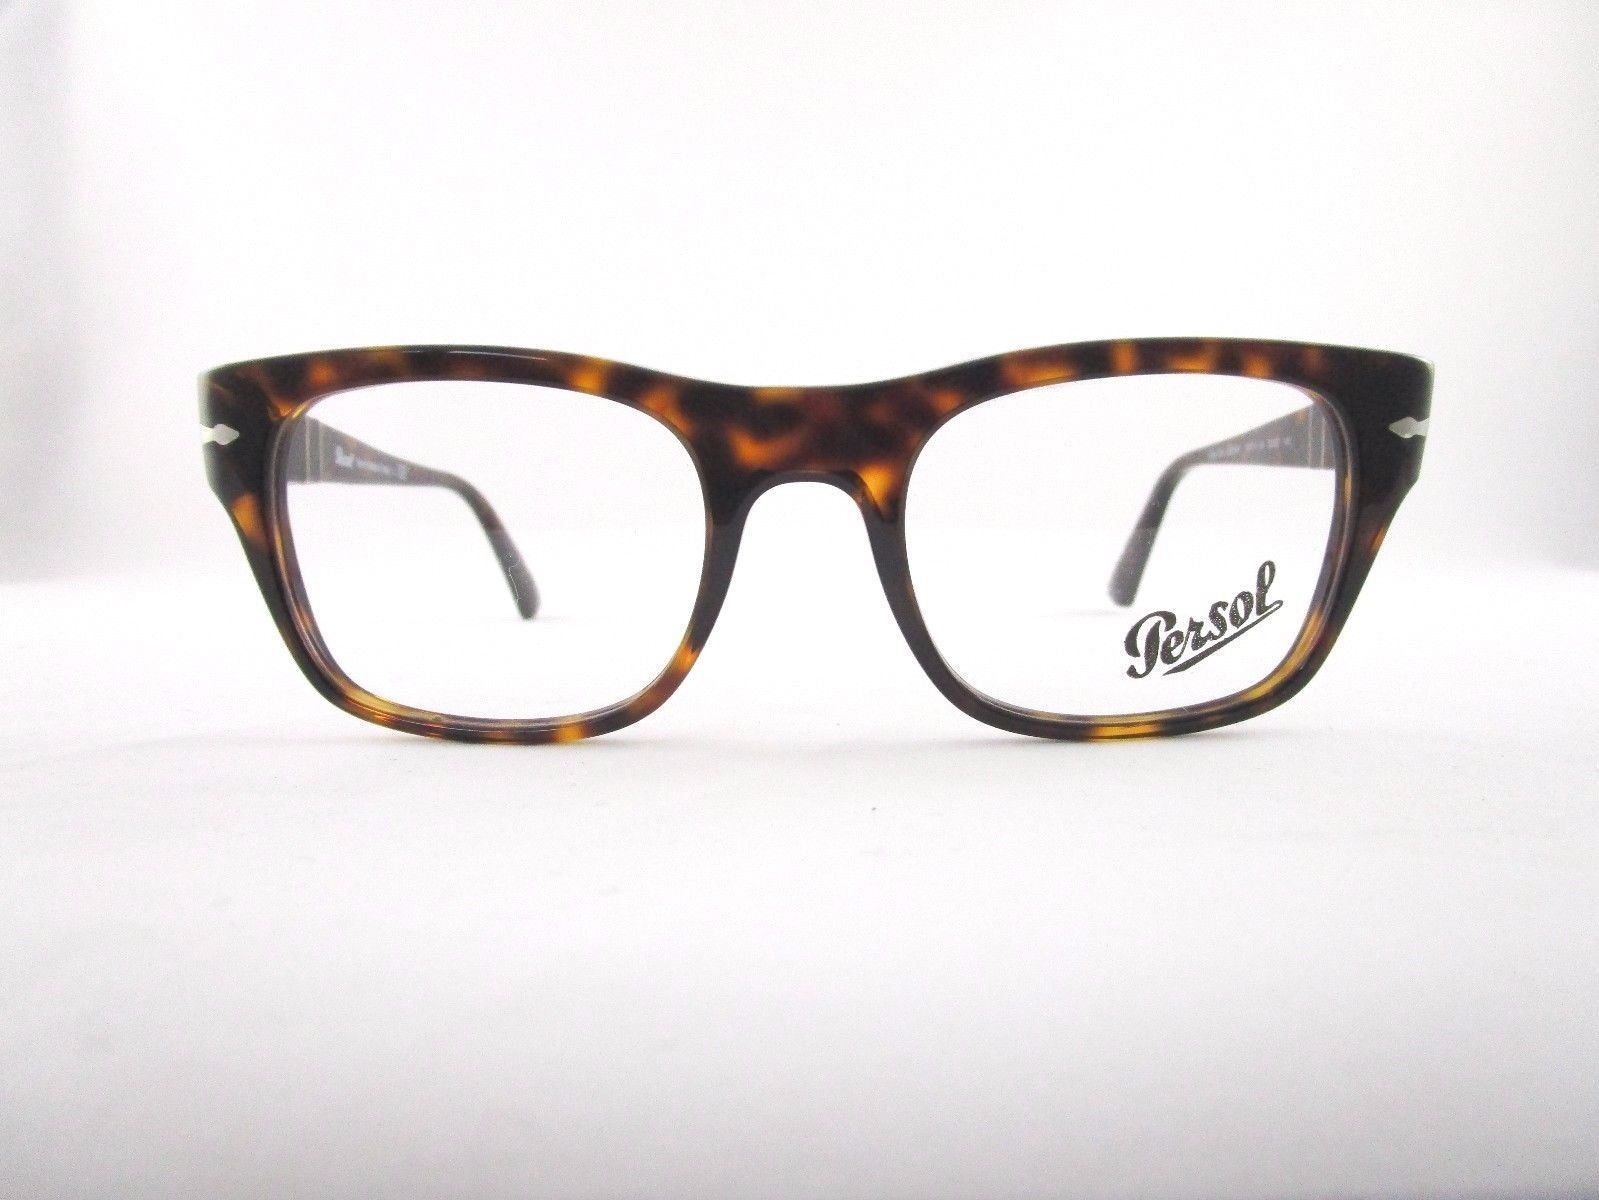 Persol Eyeglass Frames: 1 customer review and 14 listings